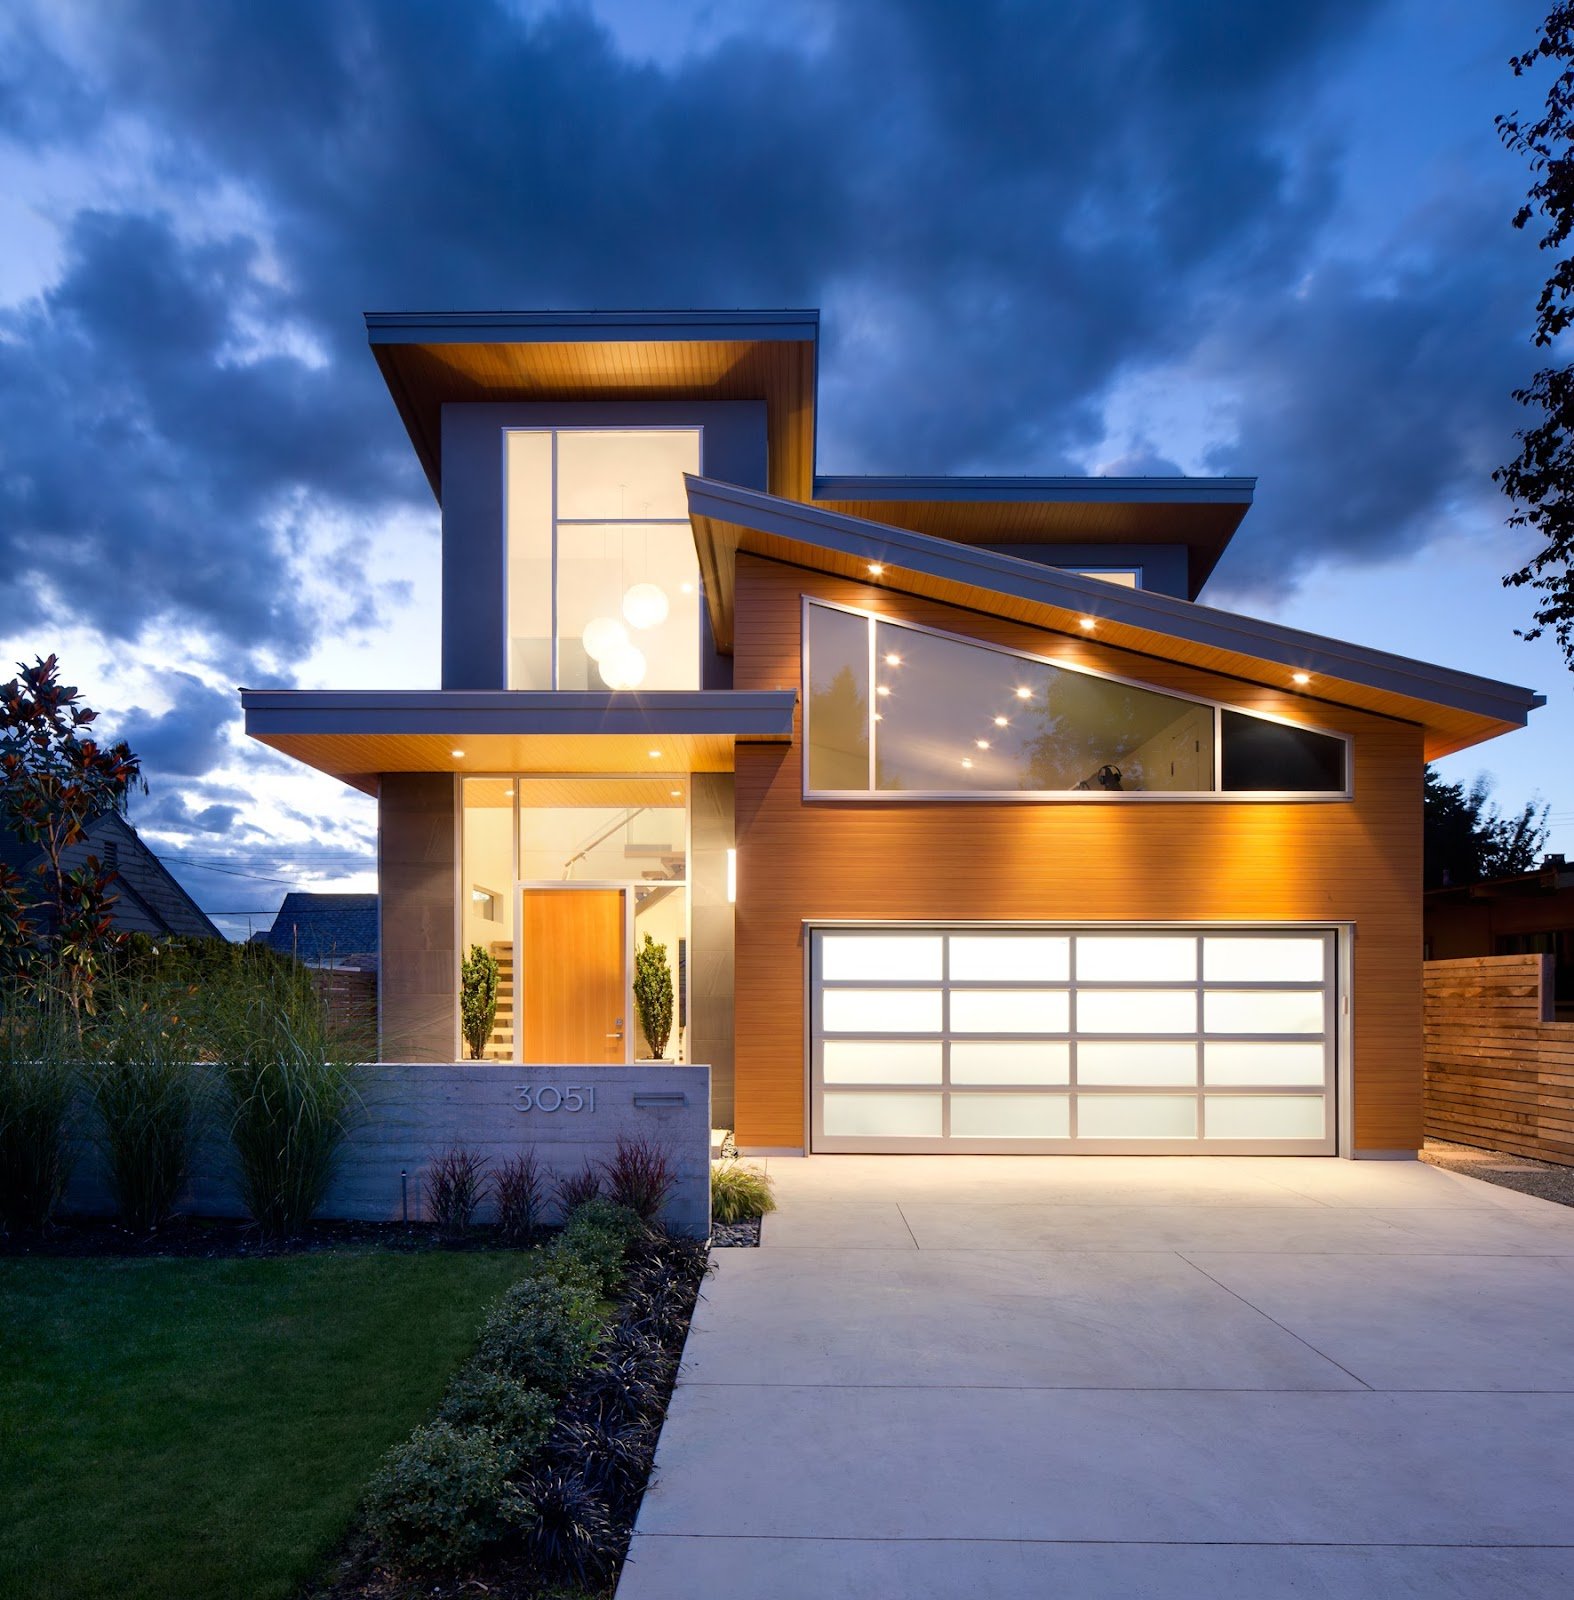 Third annual vancouver and premier white rock modern home tour giveaway